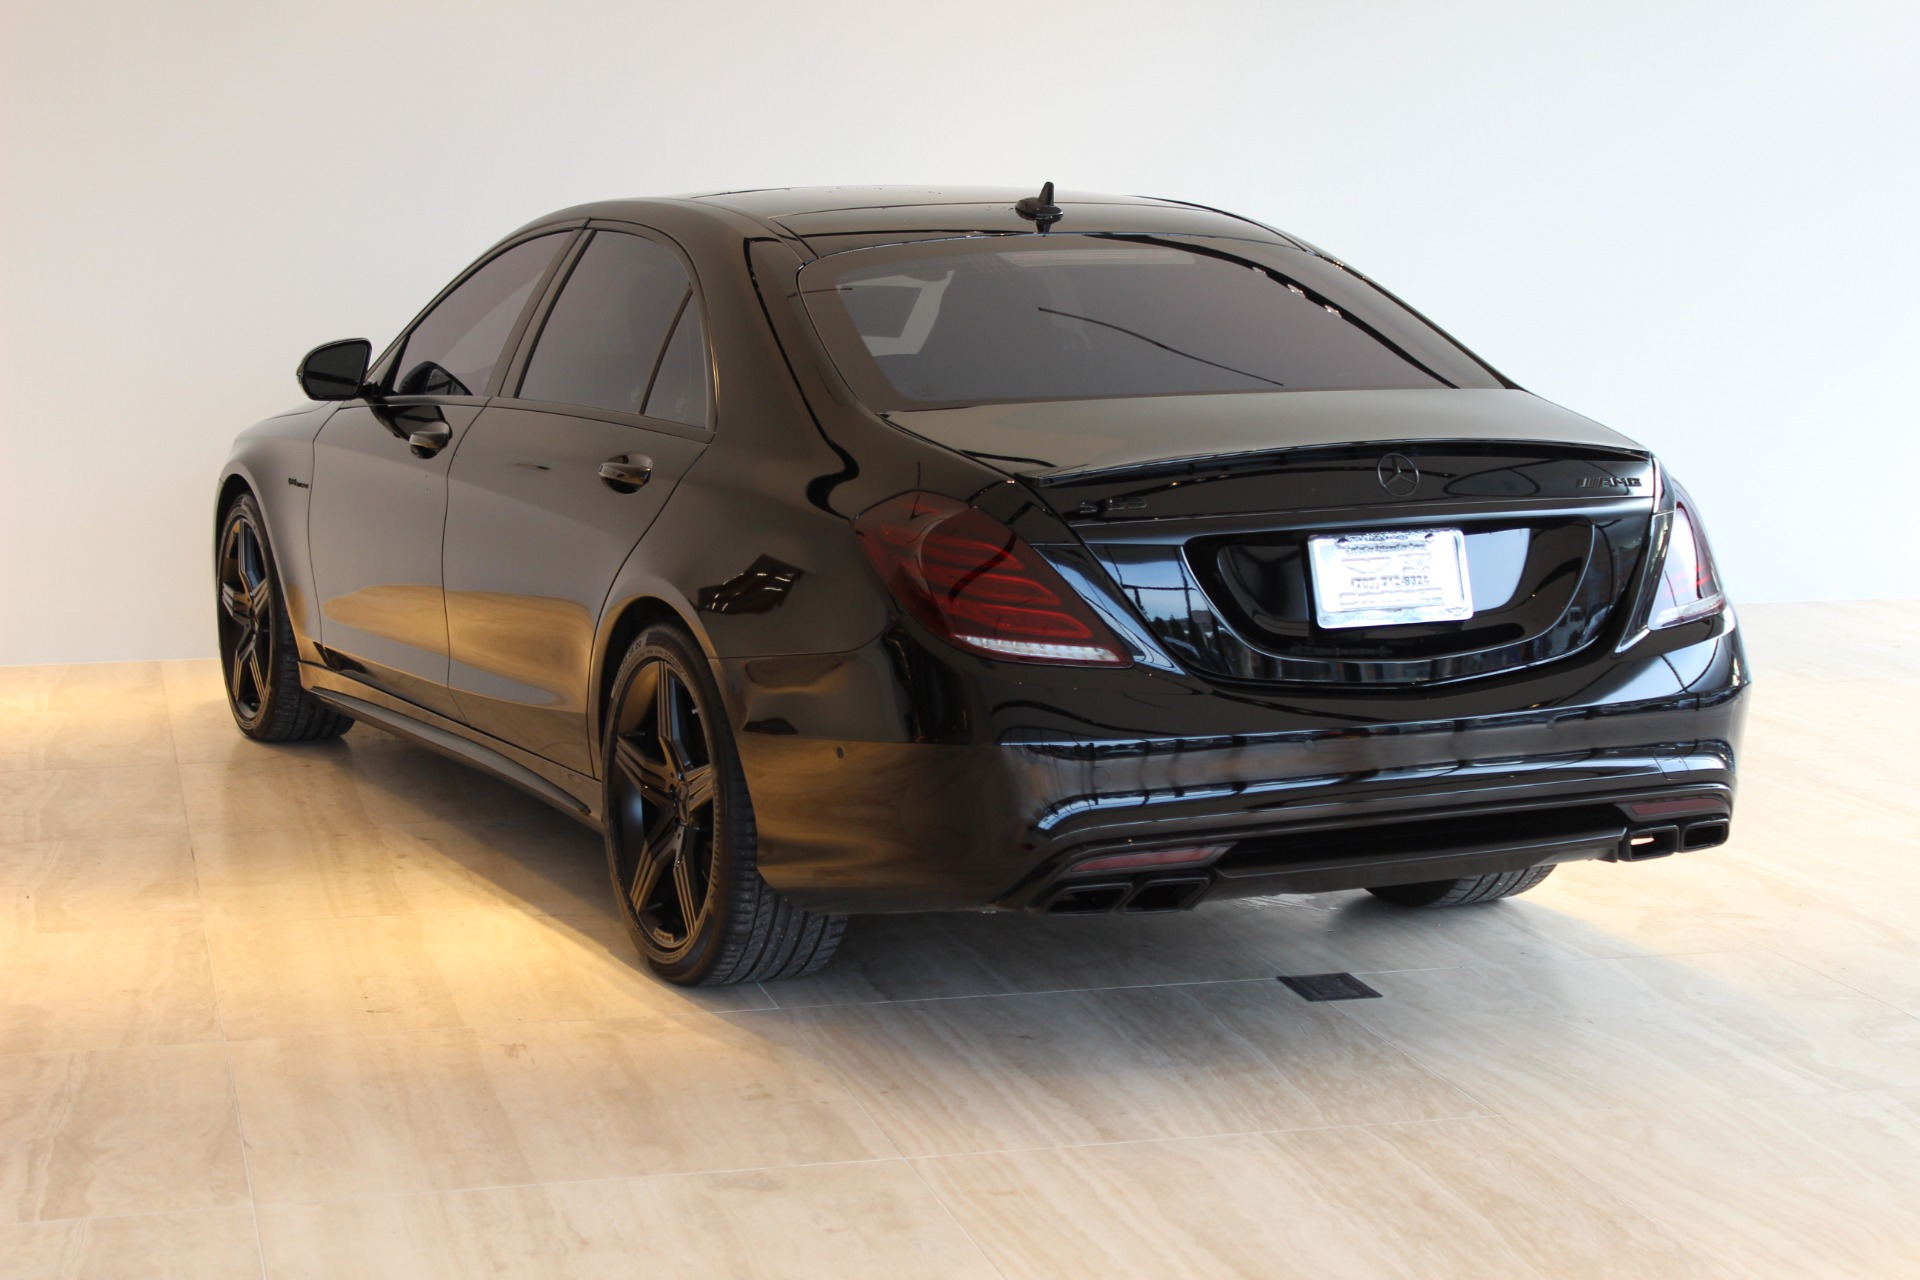 2016 mercedes benz s class amg s63 stock 7nc015201a for for Mercedes benz s class s63 amg